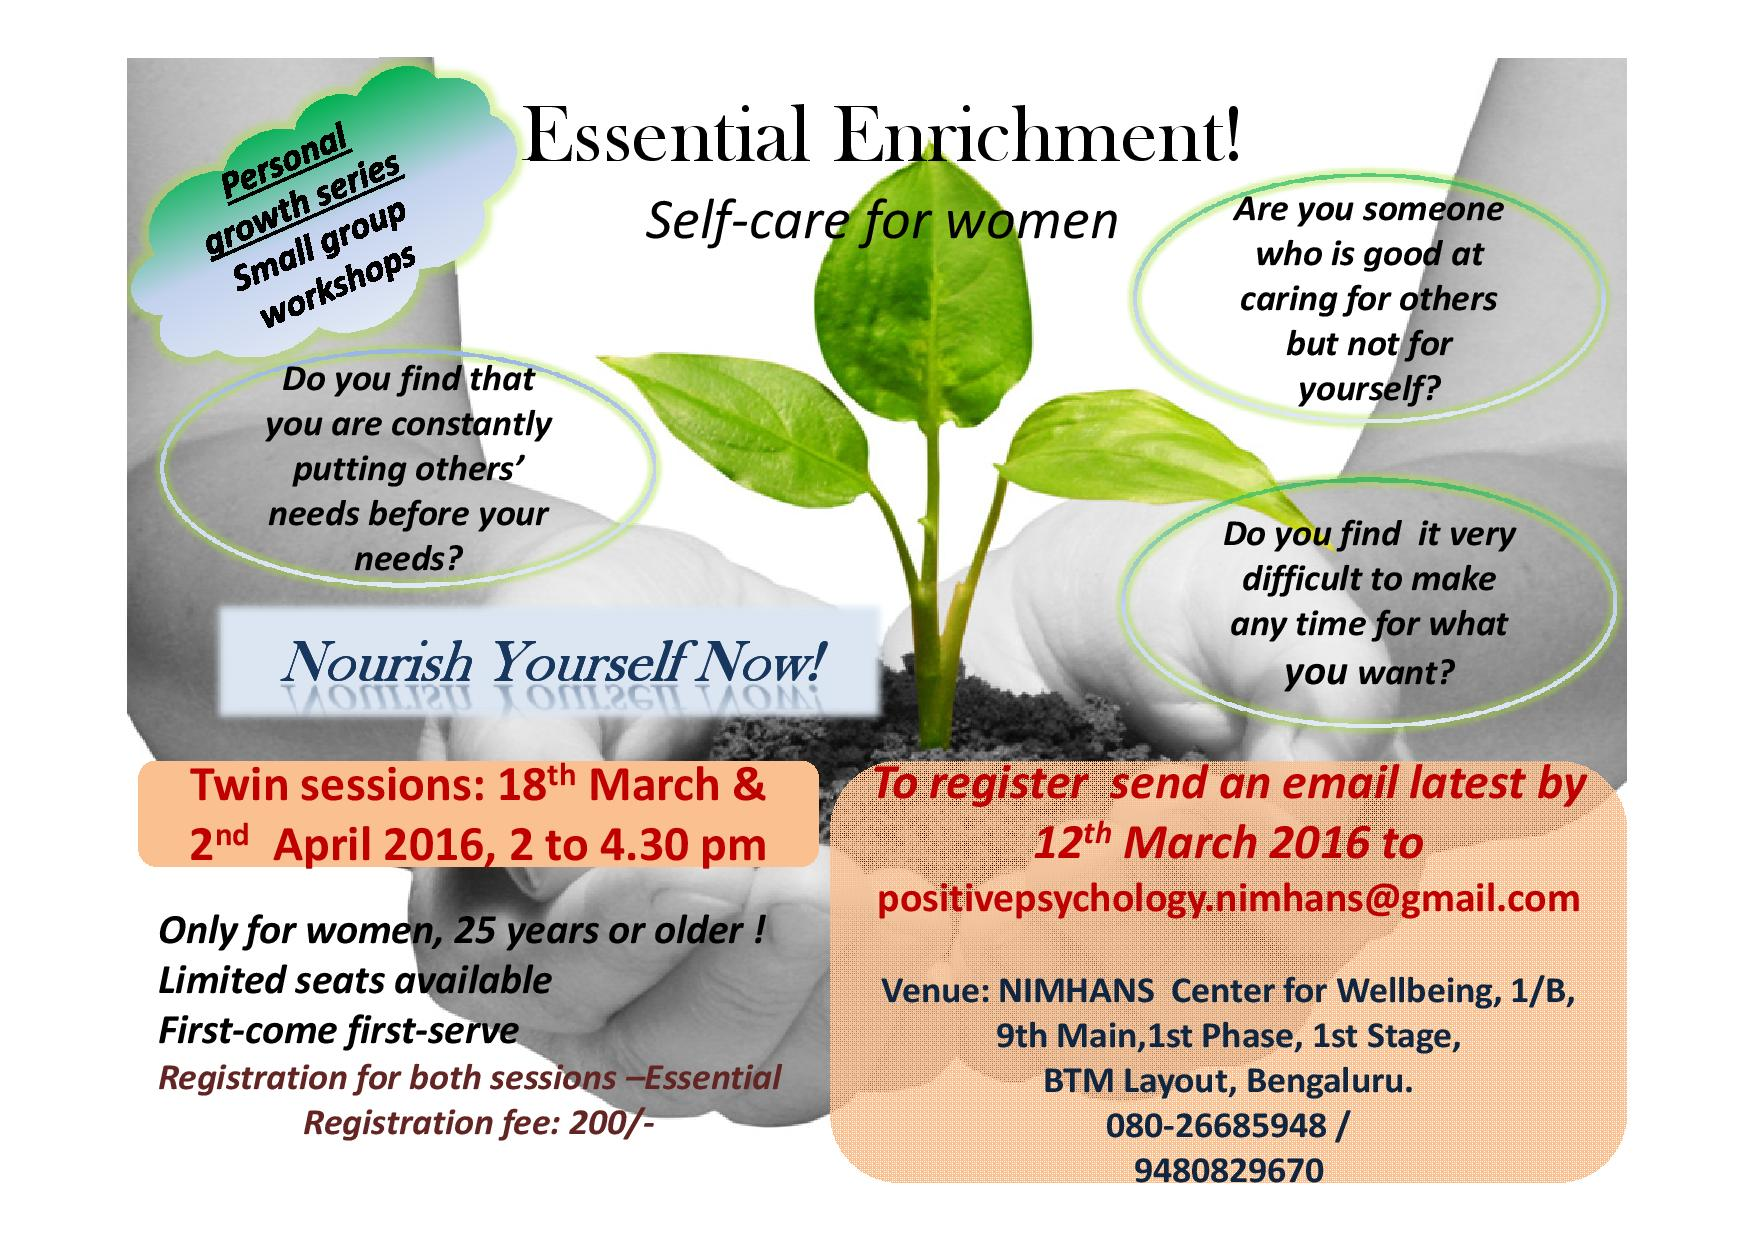 personal growth series workshop Self care-page-001